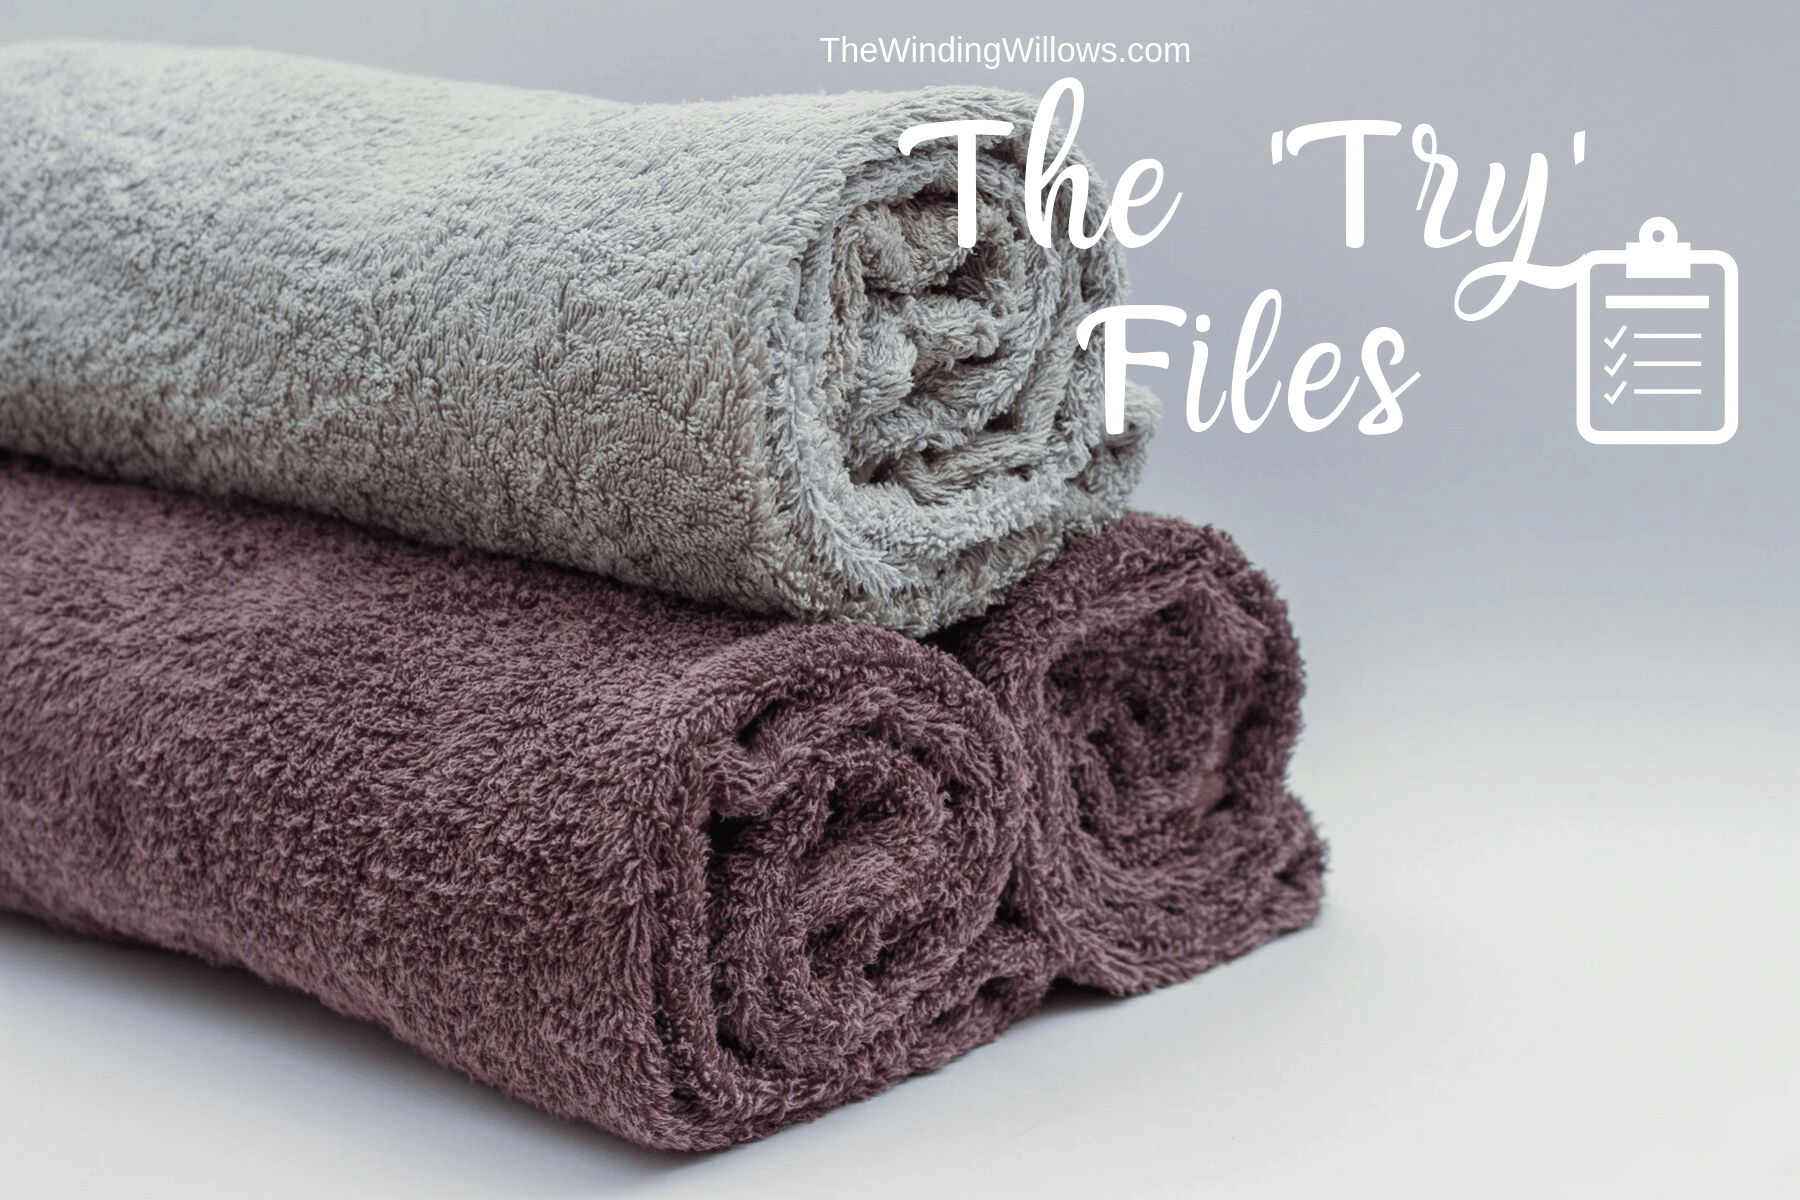 We tried different ways to remove the mildew smell from towels. See which one worked better.